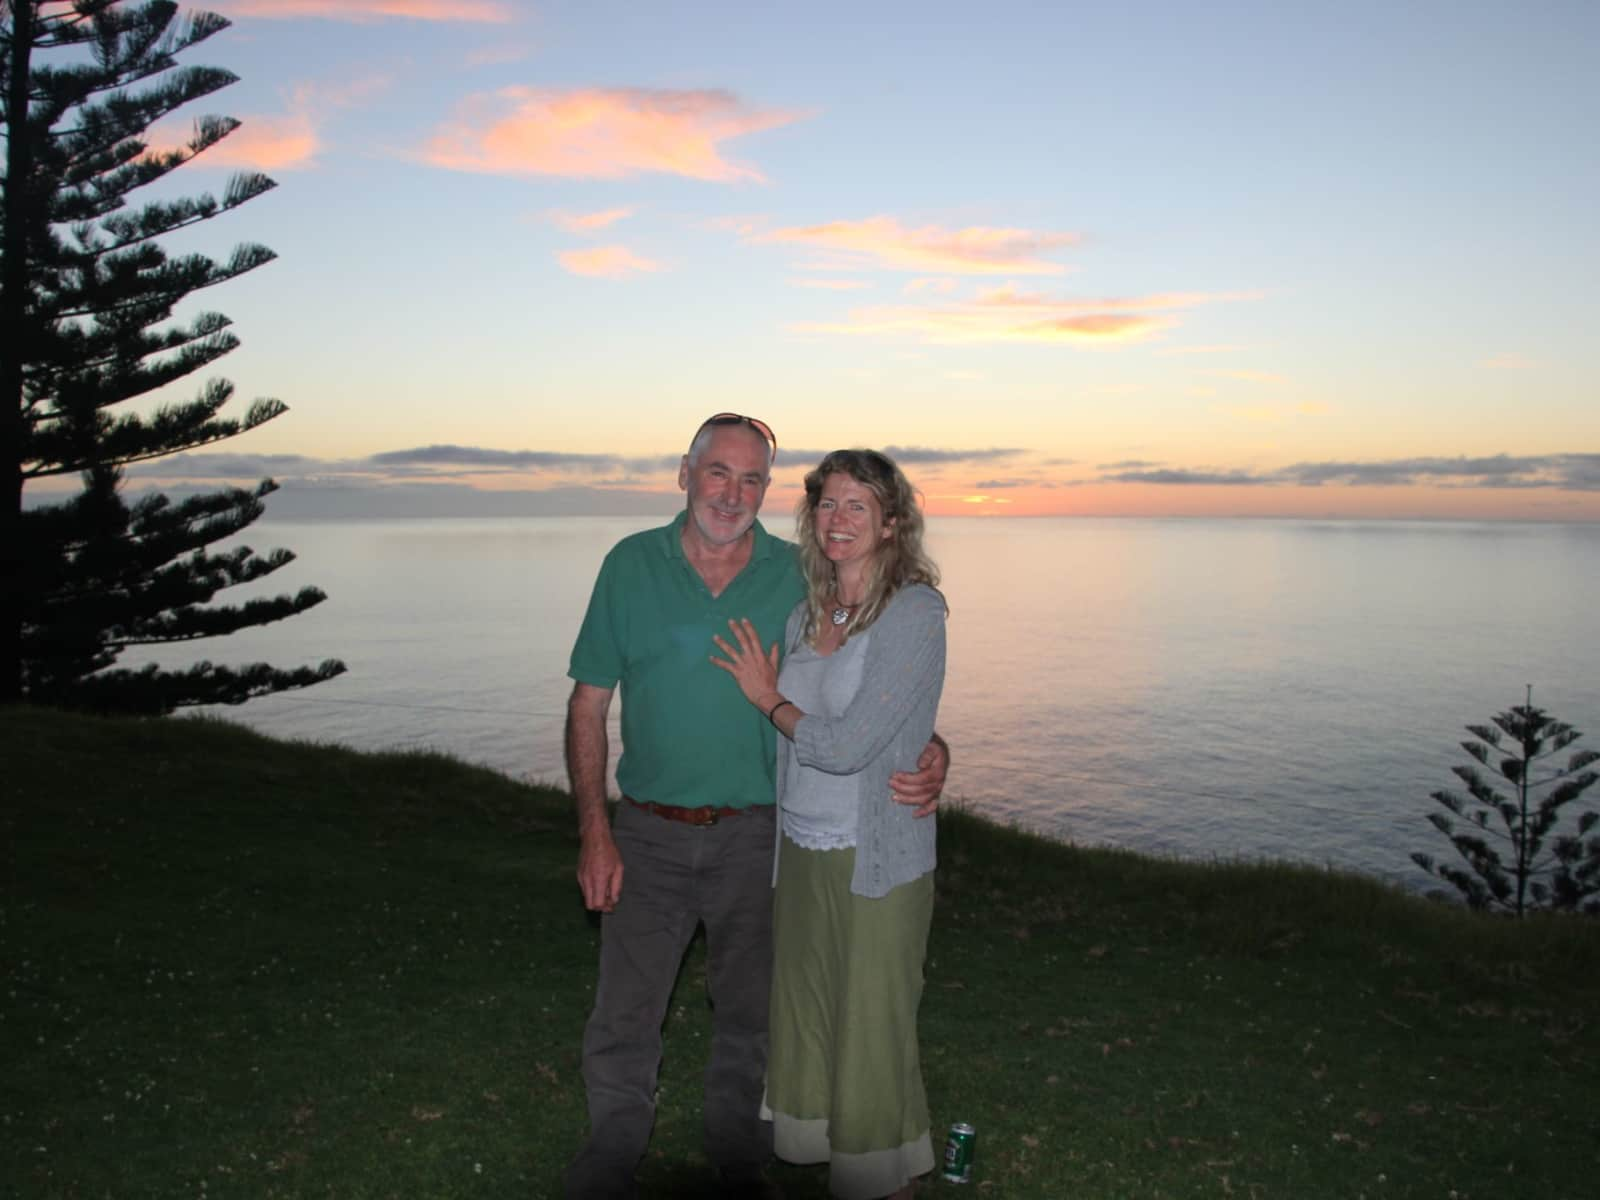 Samantha & Gregory from Bungendore, New South Wales, Australia